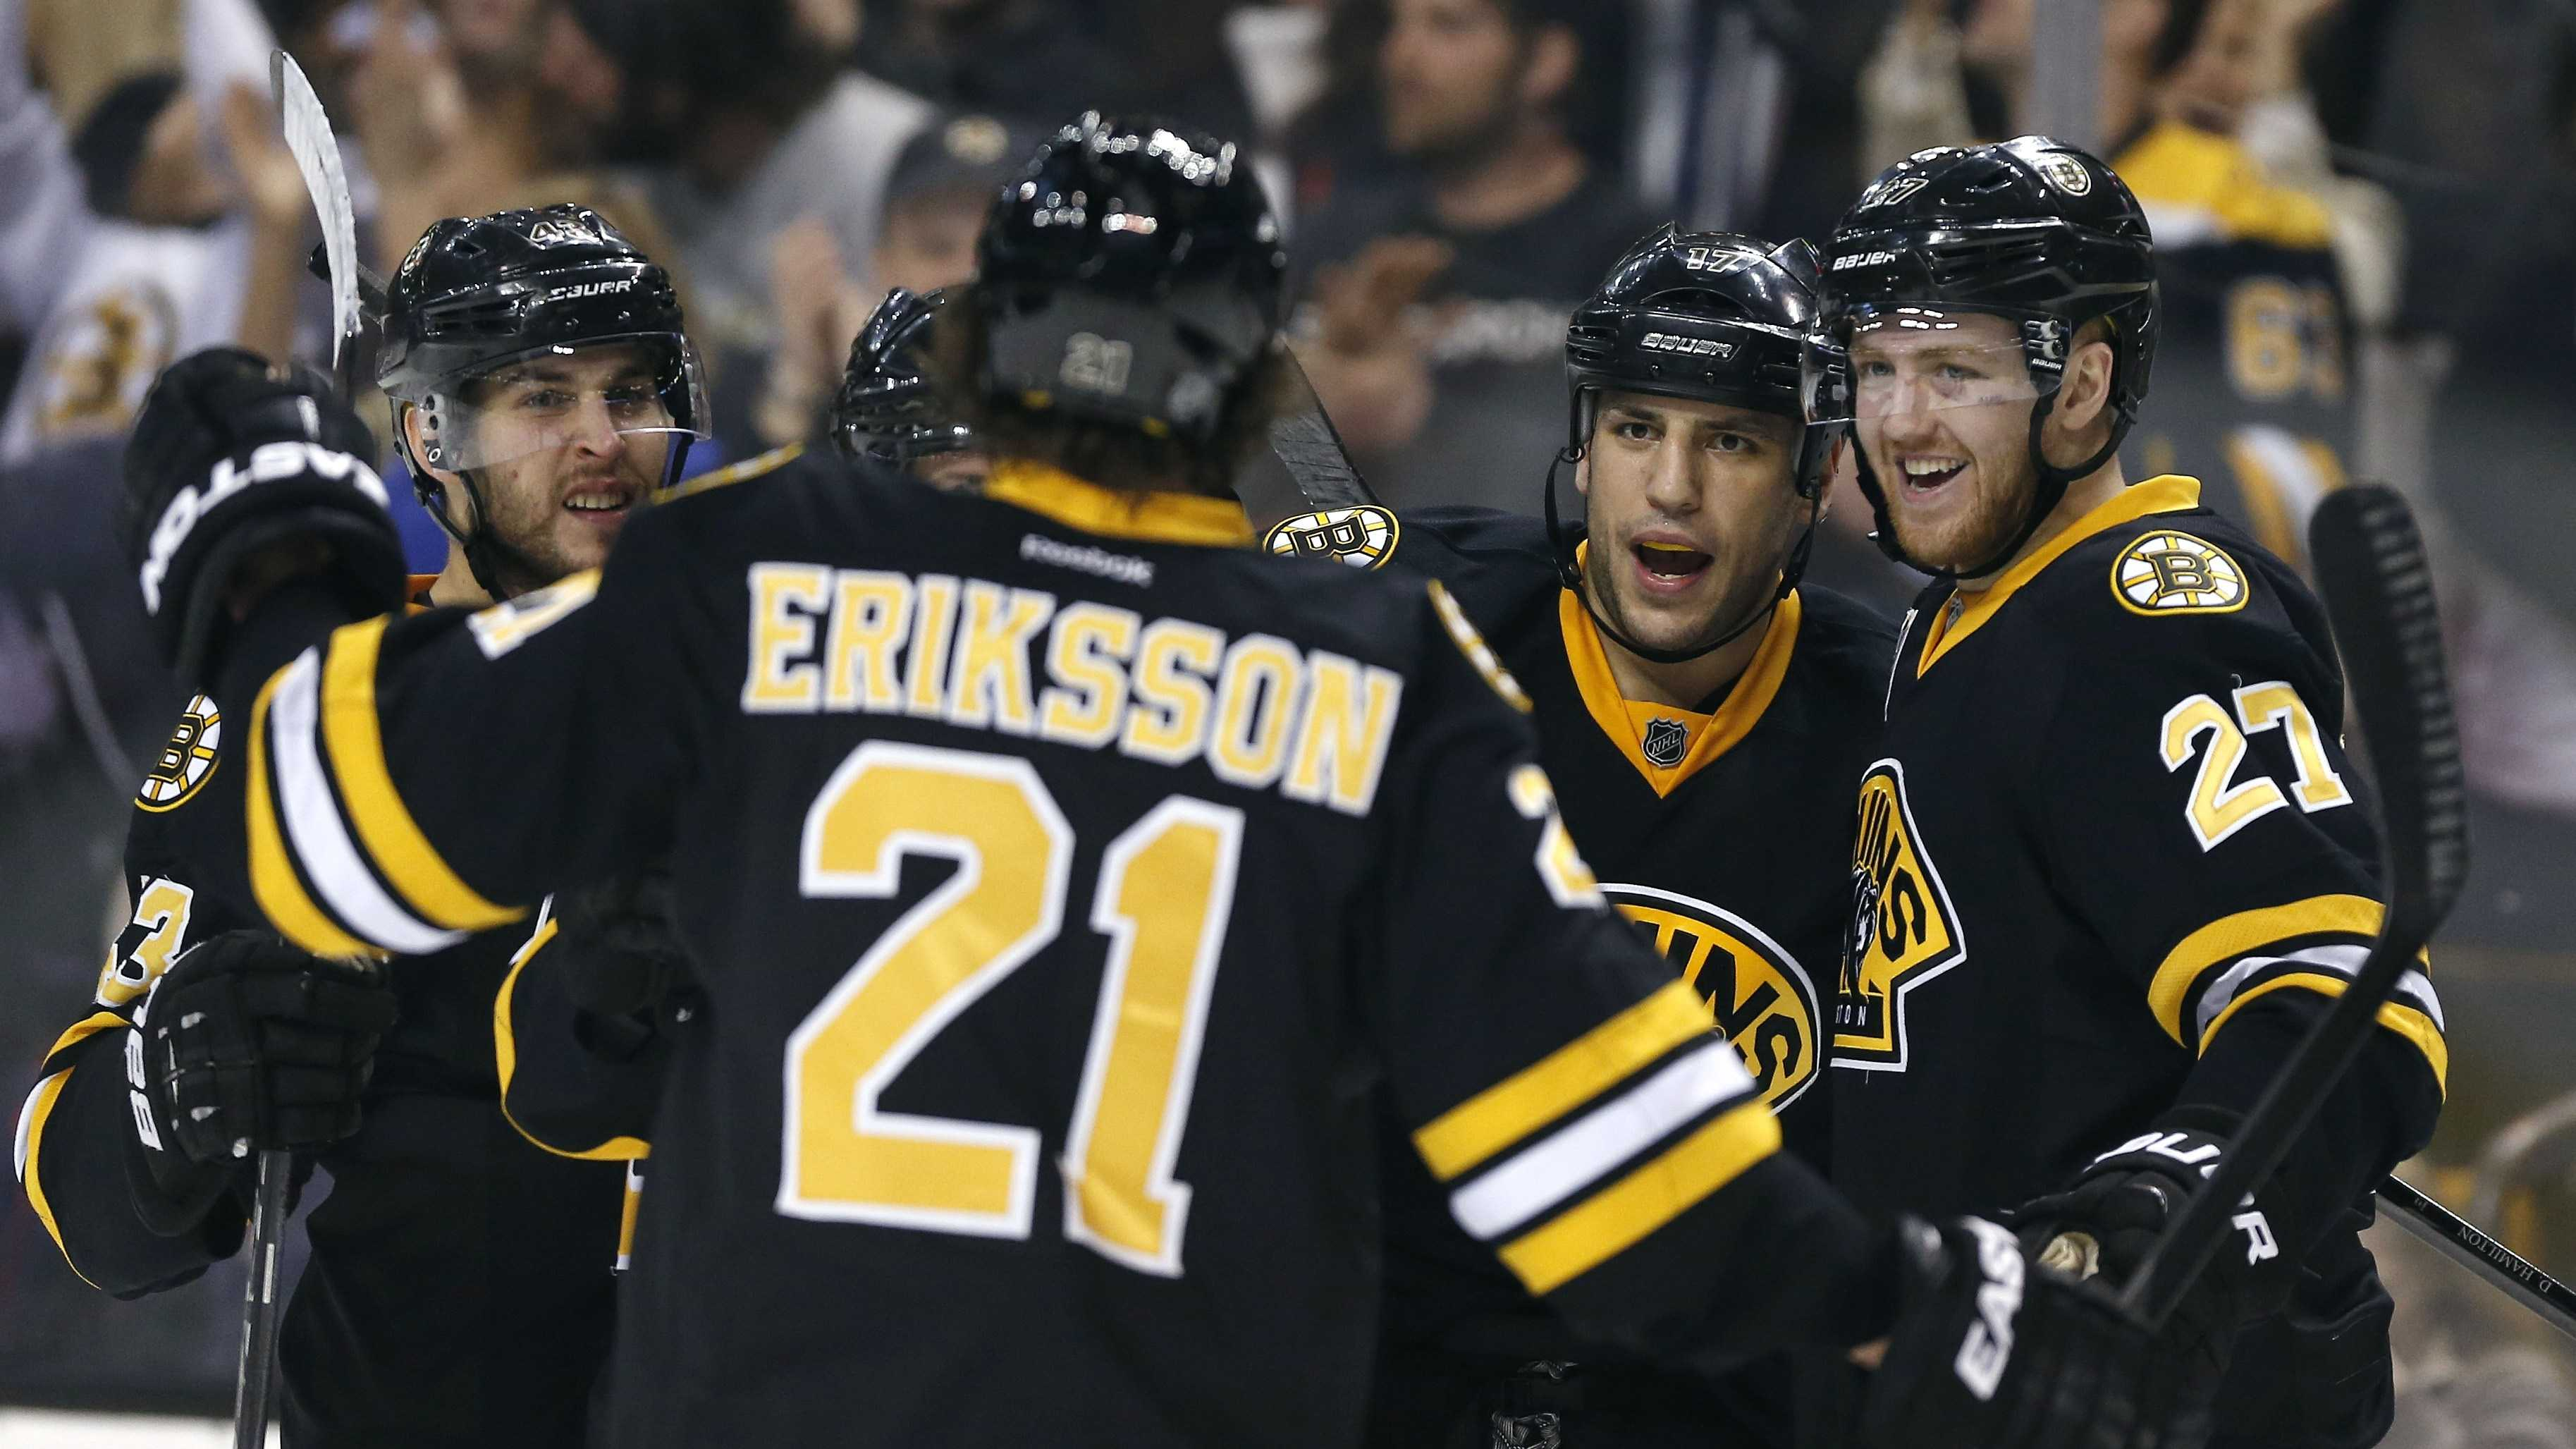 Boston Bruins' Milan Lucic (17) celebrates his goal with teammates Dougie Hamilton (27) and Loui Eriksson (21) in the second period of an NHL hockey game against the Philadelphia Flyers in Boston, Saturday, April 5, 2014. (AP Photo/Michael Dwyer)